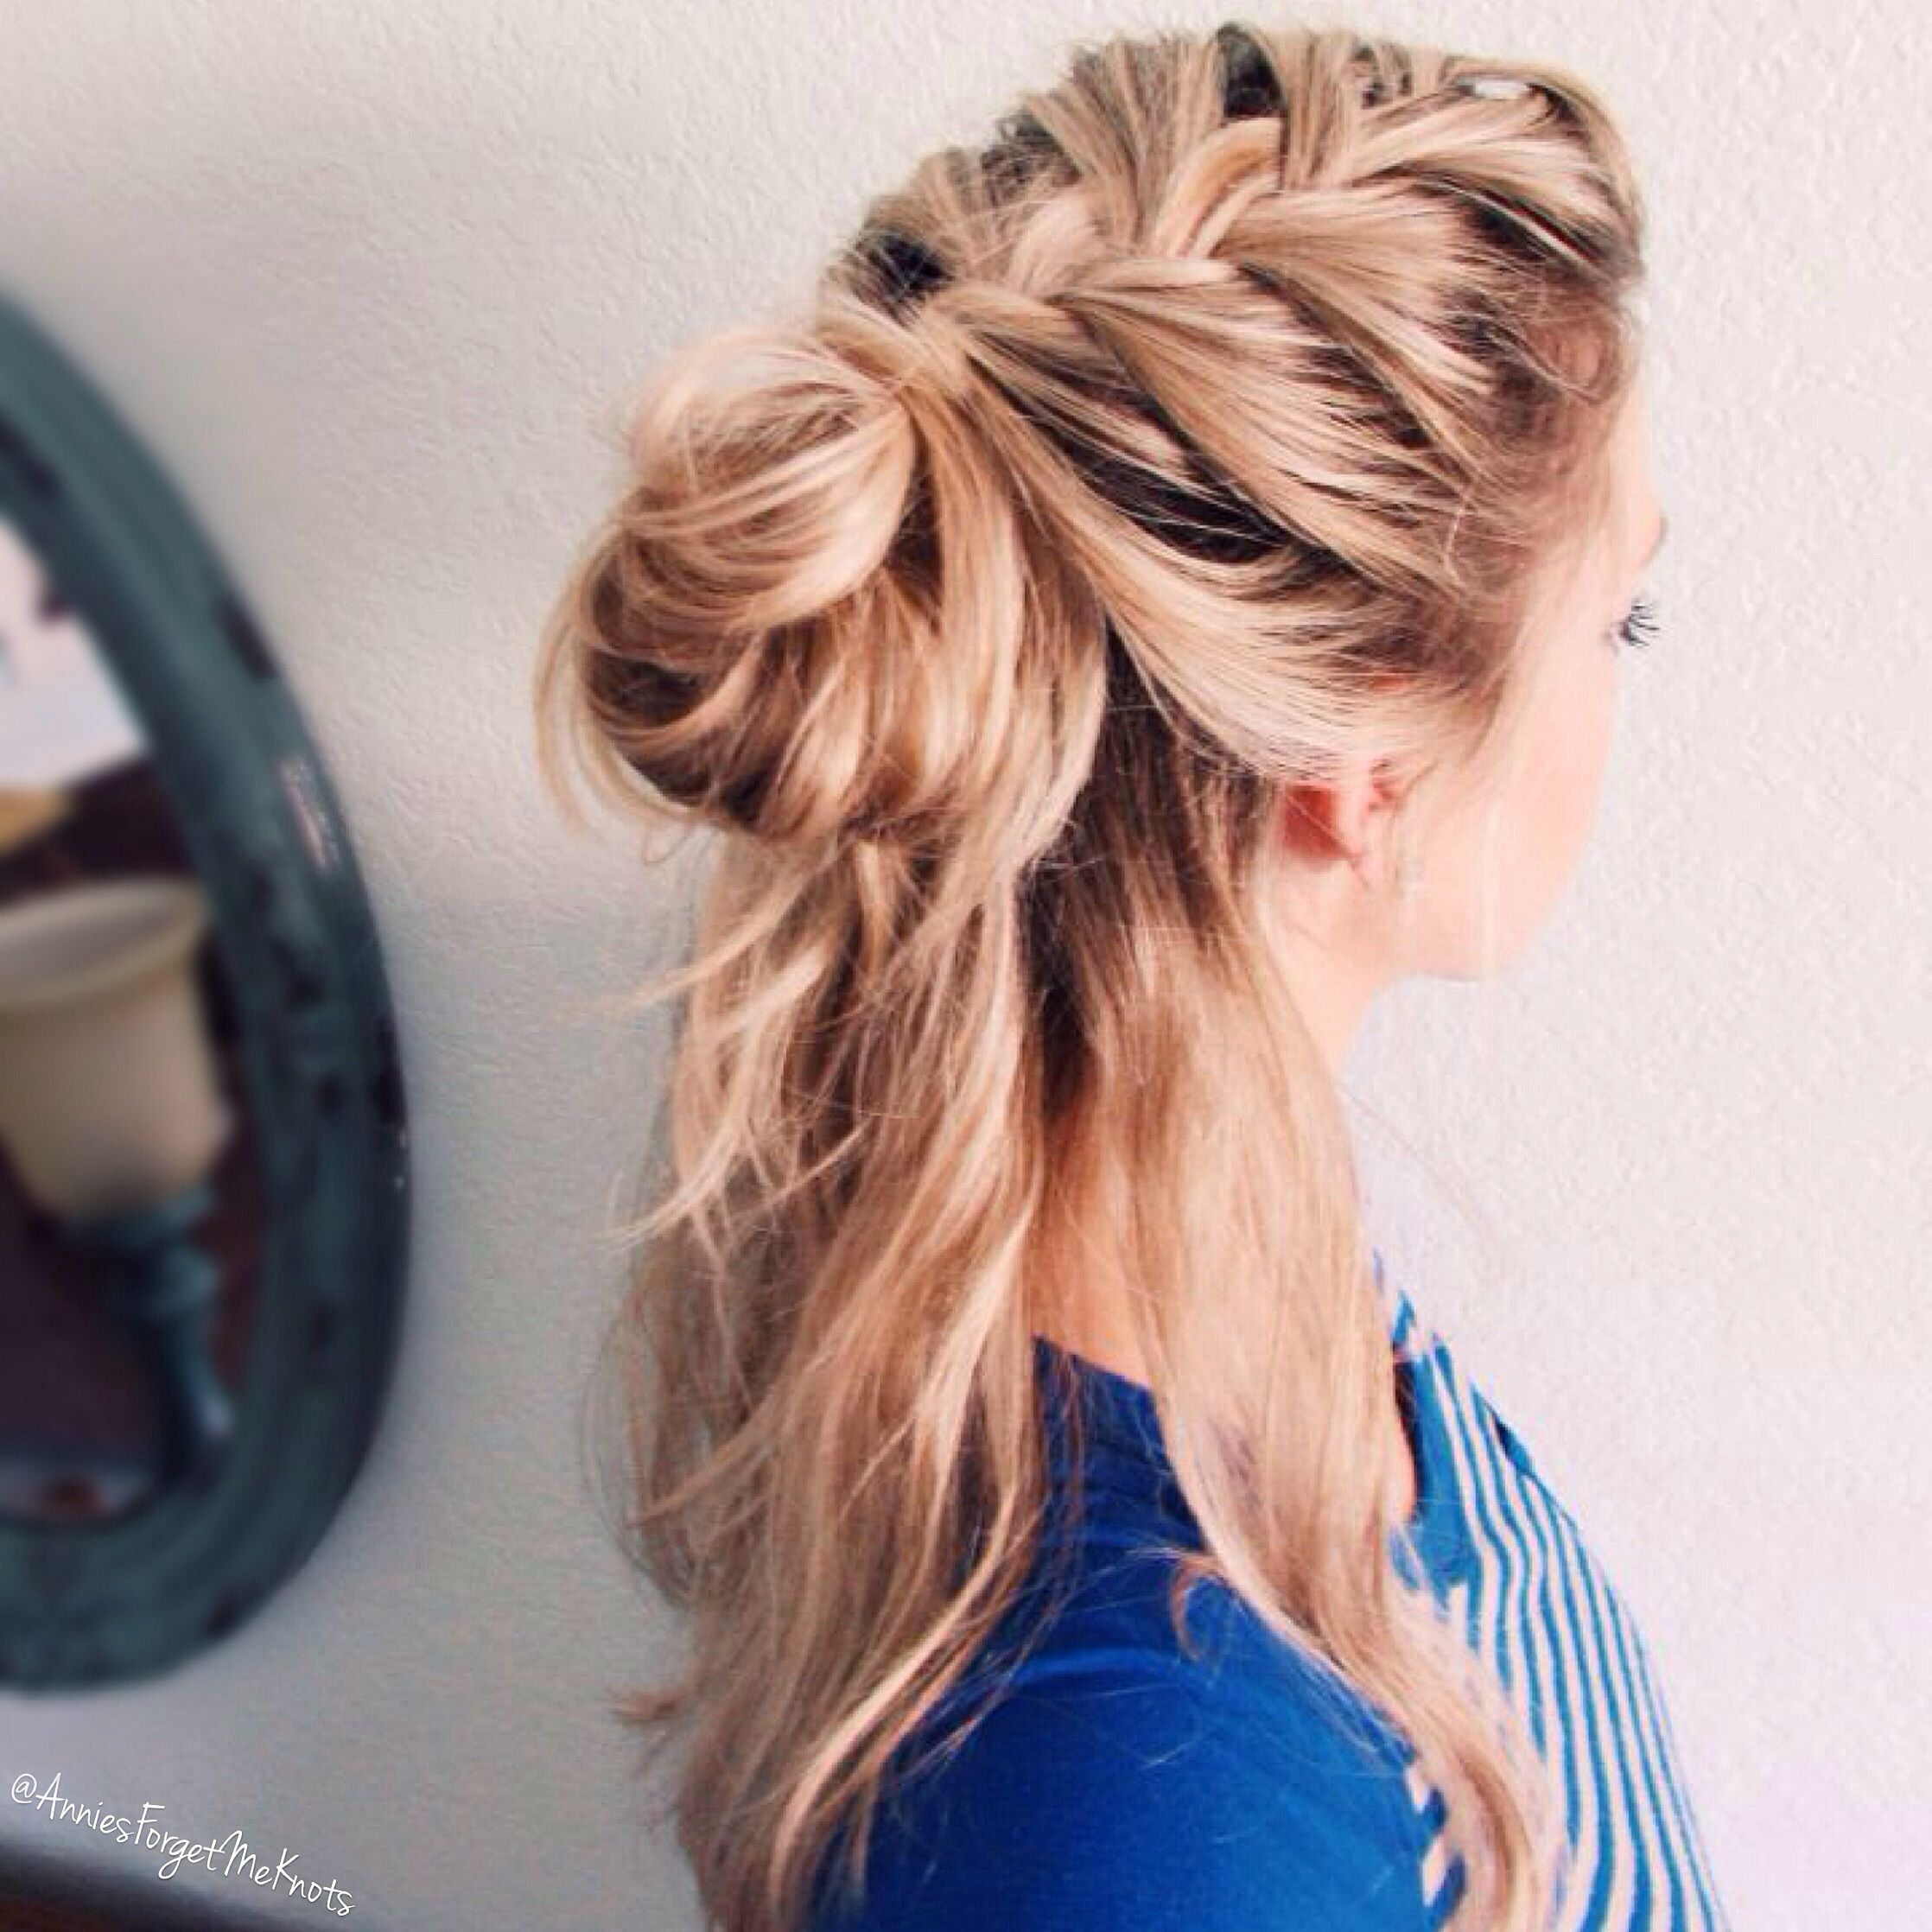 French braiding tips - French Braid